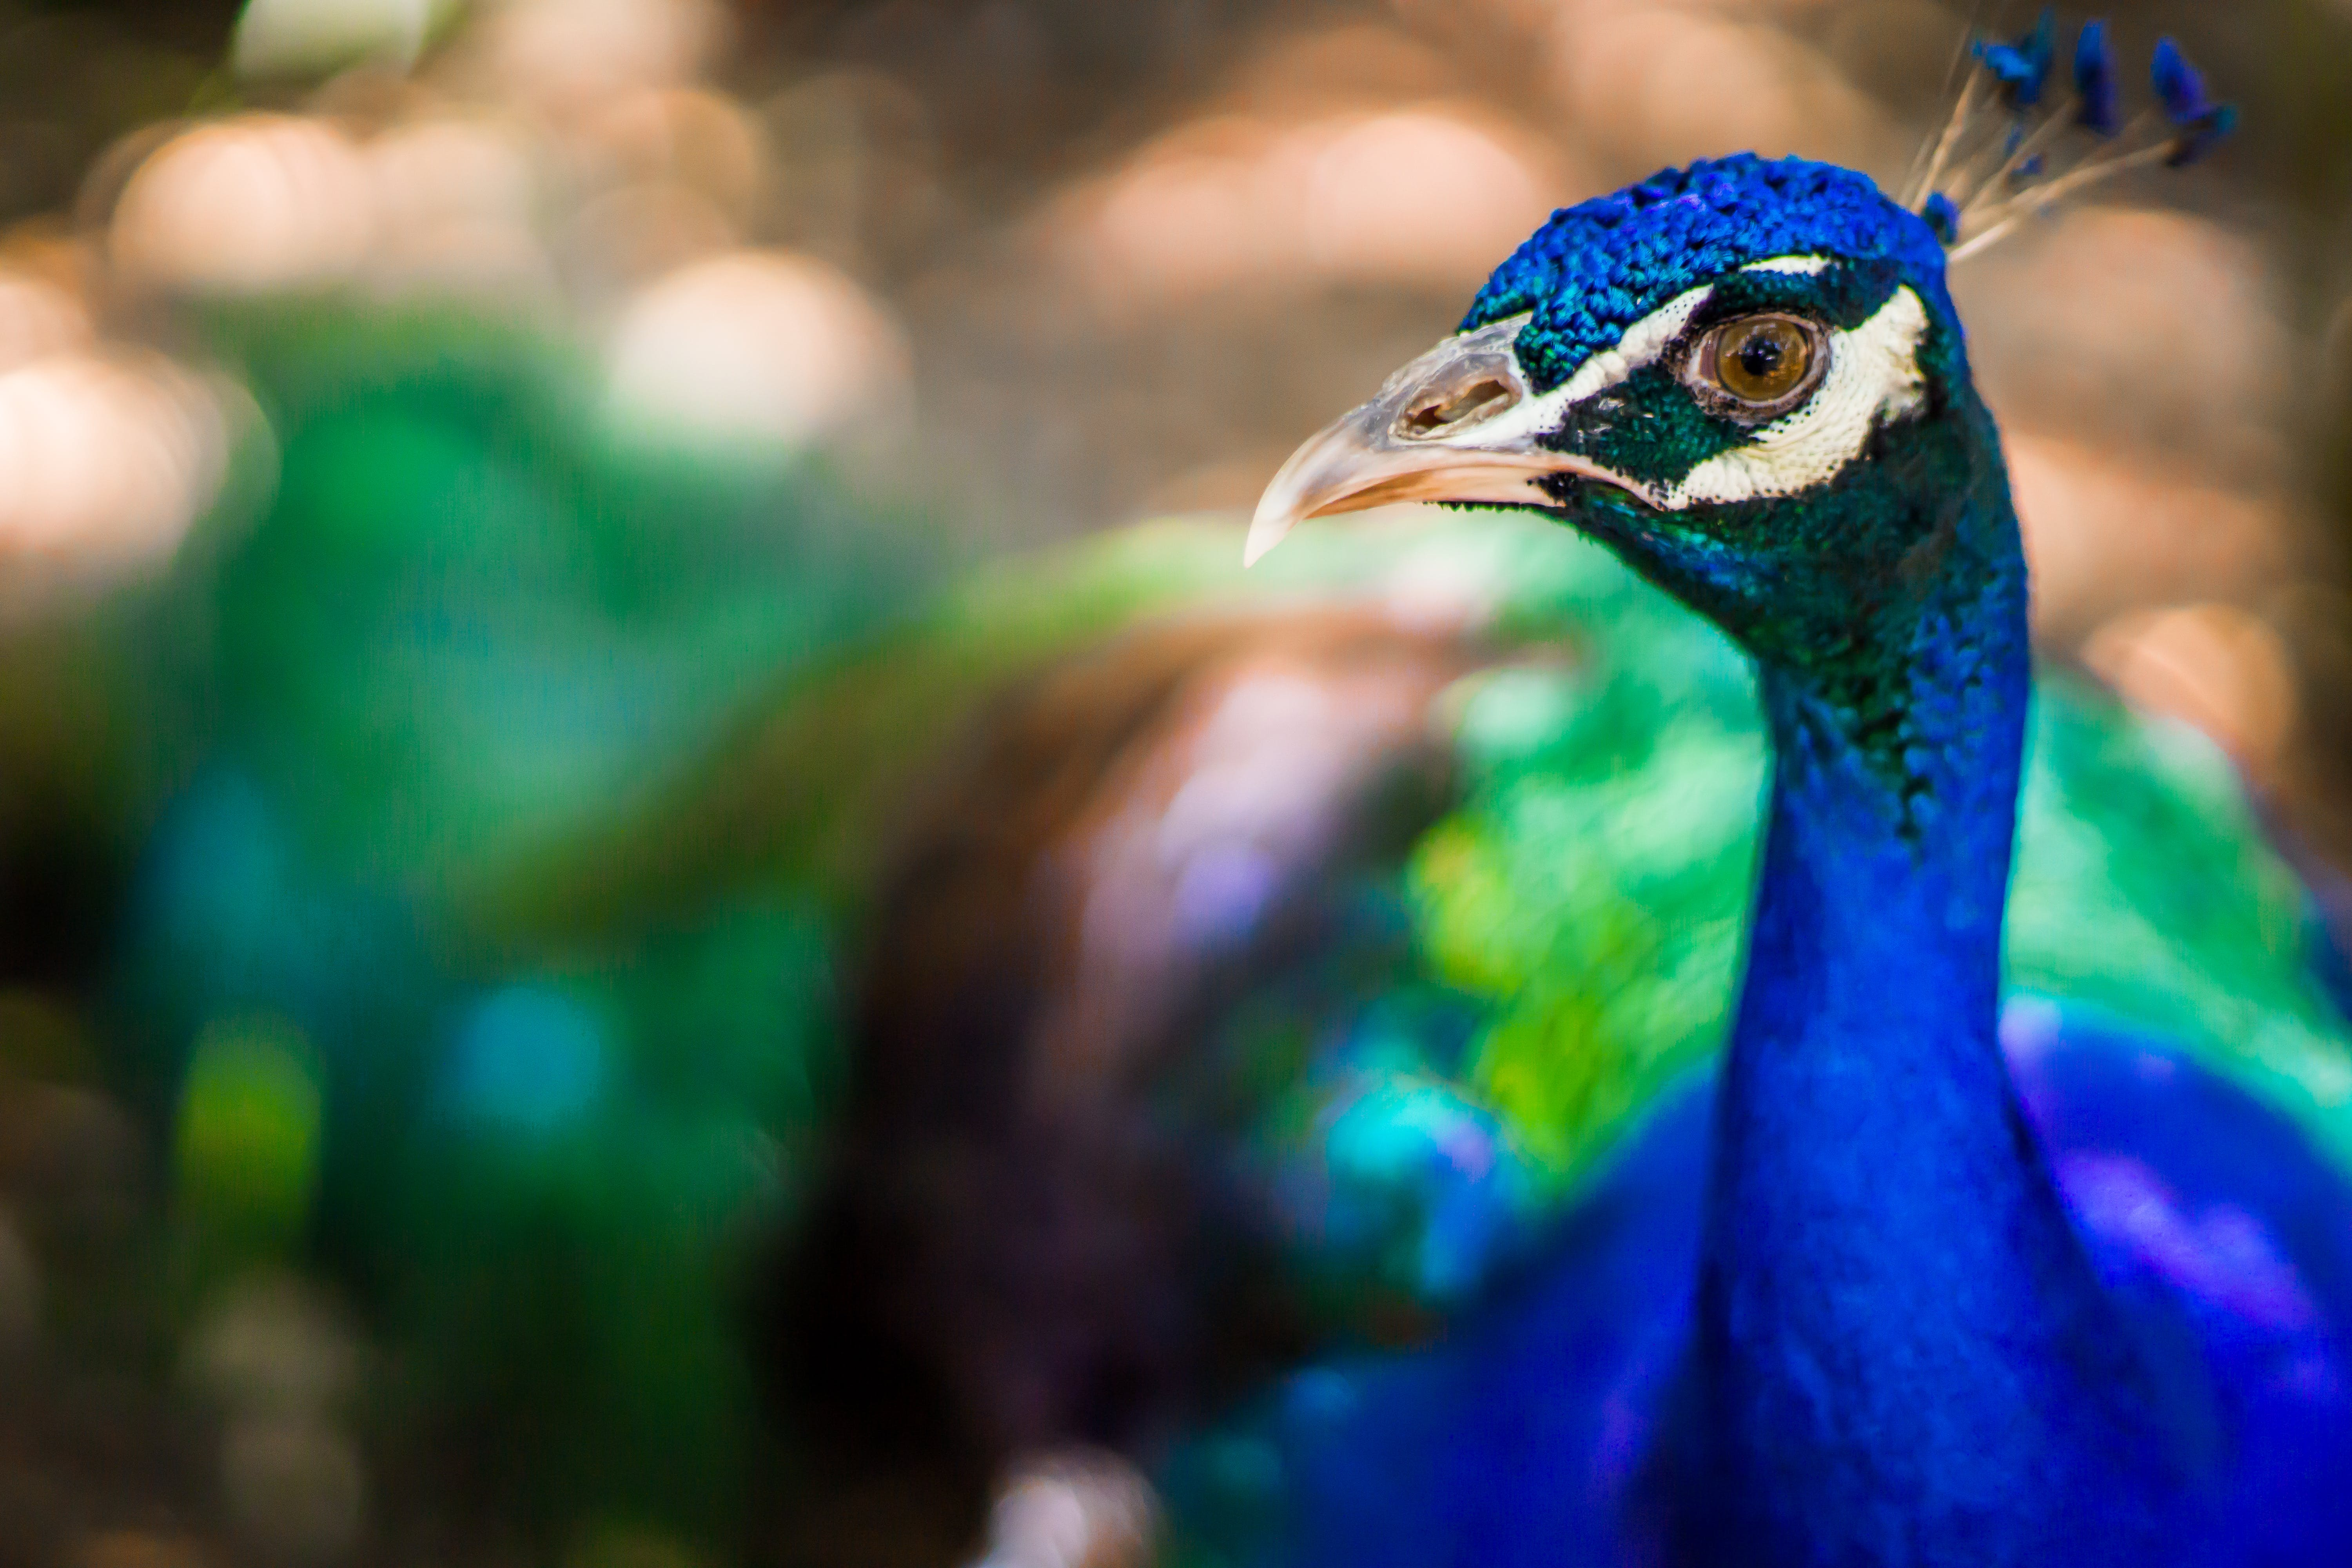 Tilt Shift Lens Photography of Blue Peacock